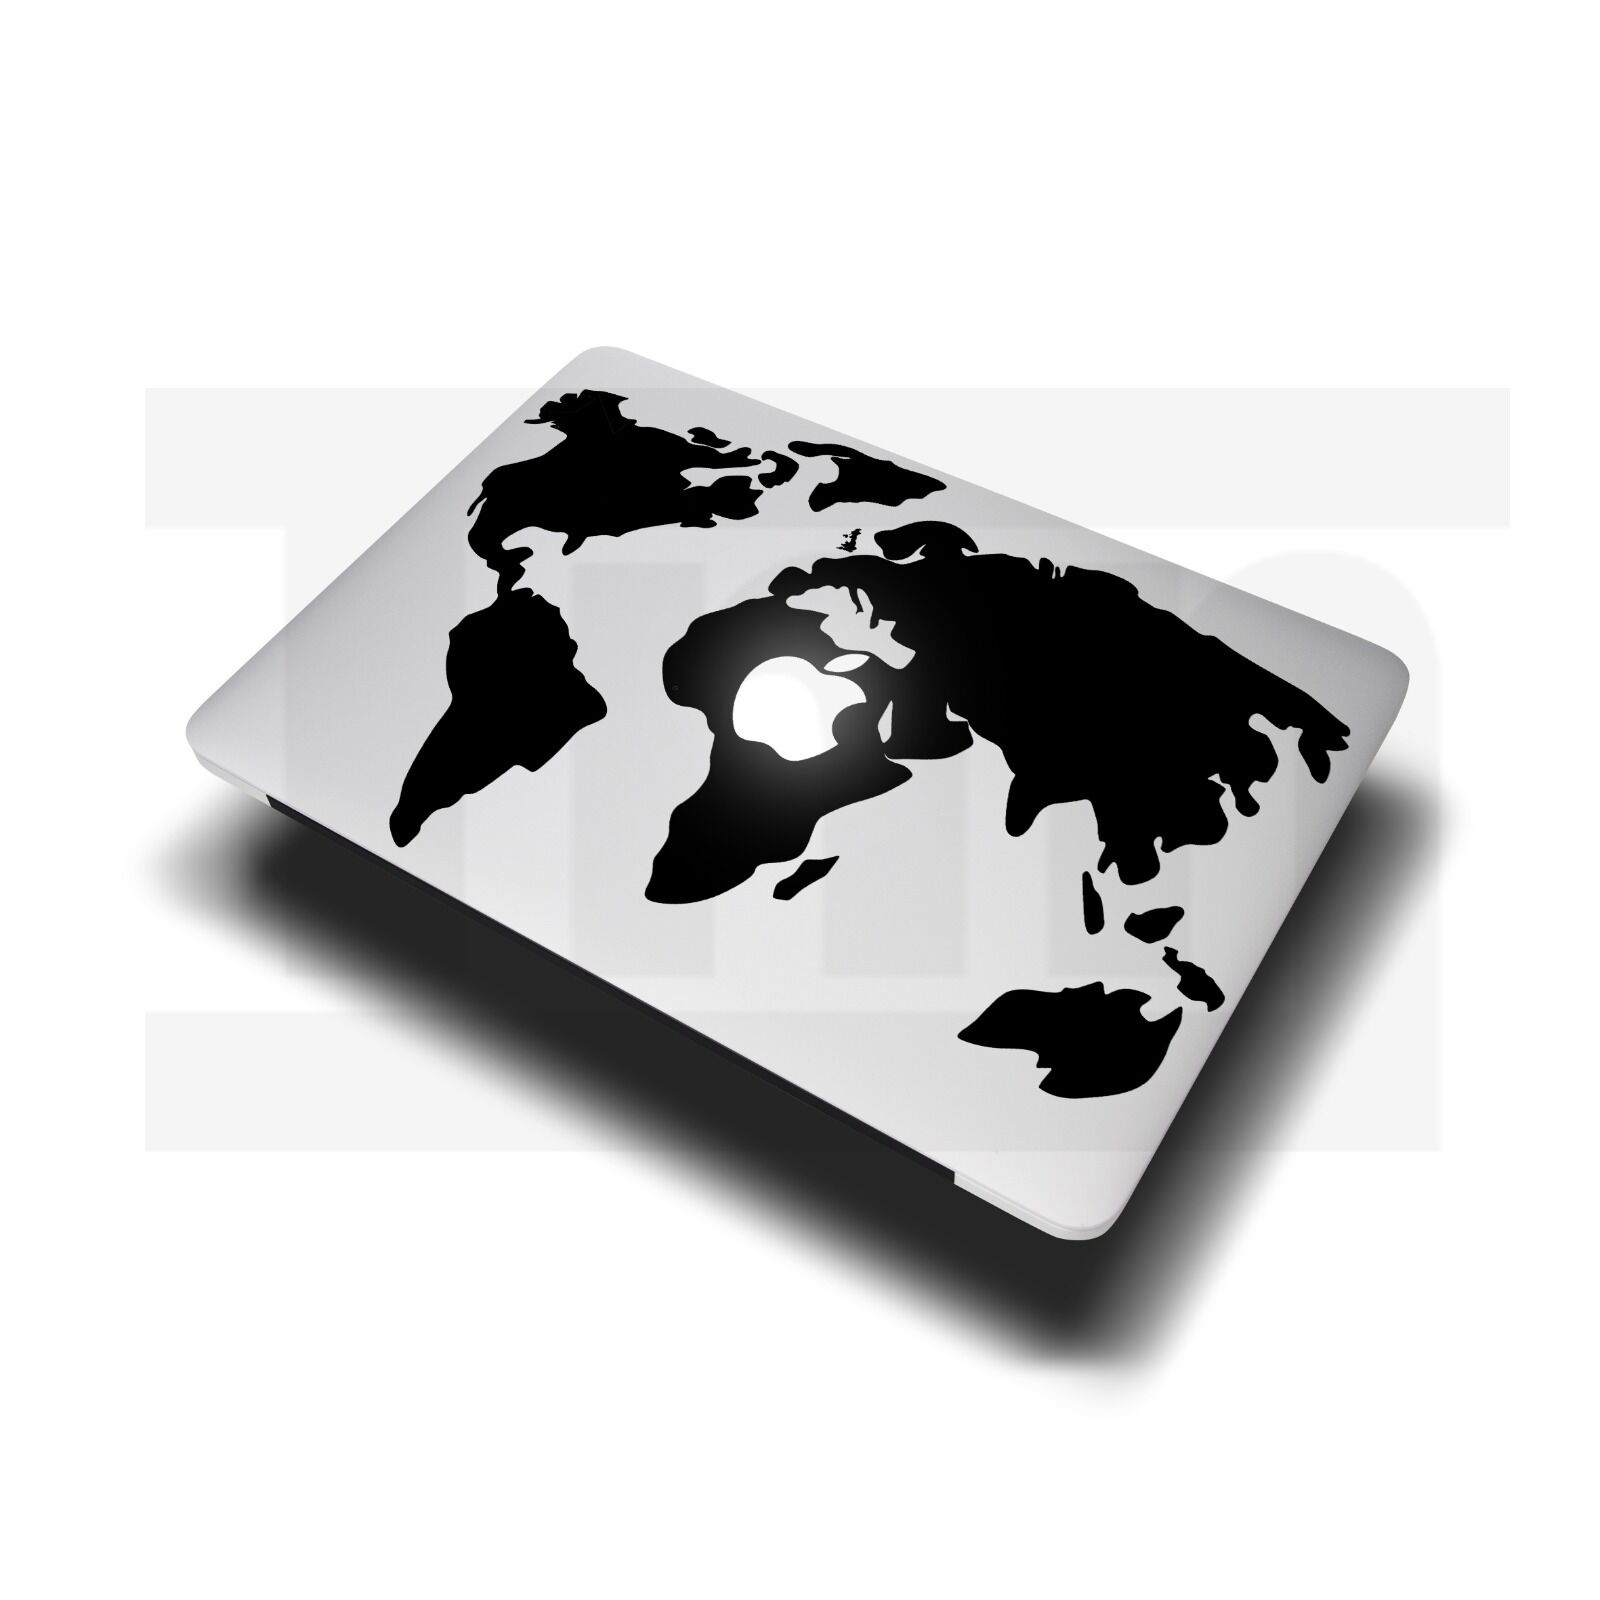 World map decal sticker for apple macbook air pro laptop 11 13 15 1 of 1only 1 available gumiabroncs Choice Image